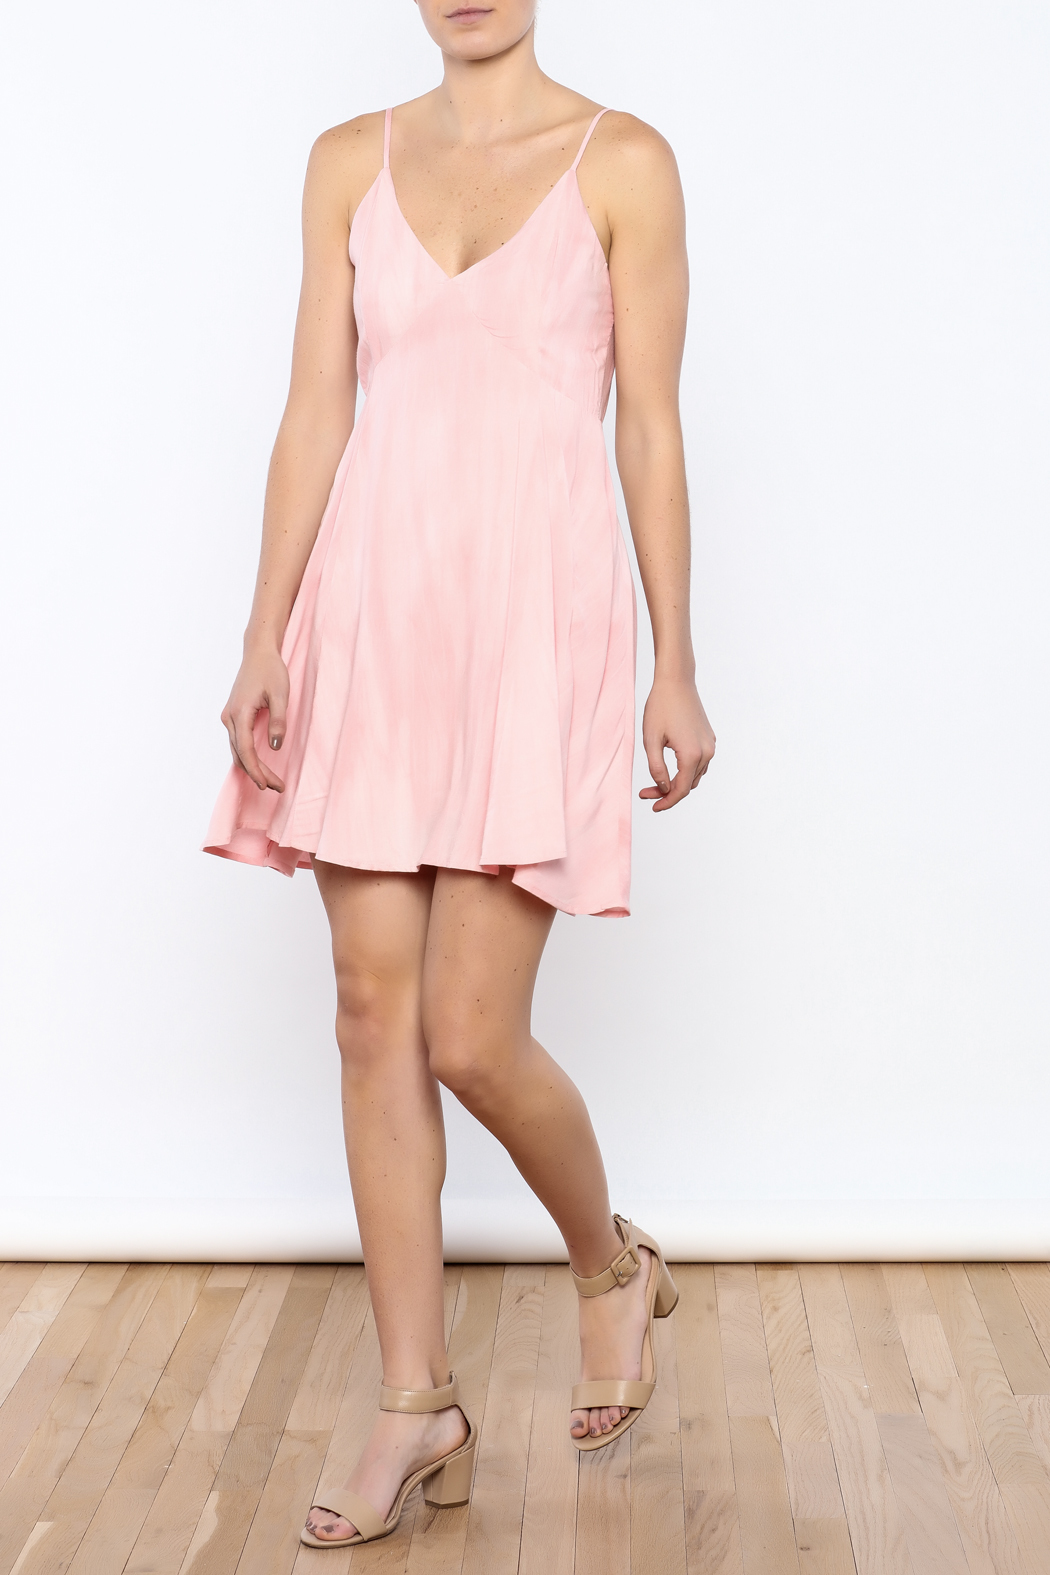 Bacio Blush Flared Dress - Front Full Image